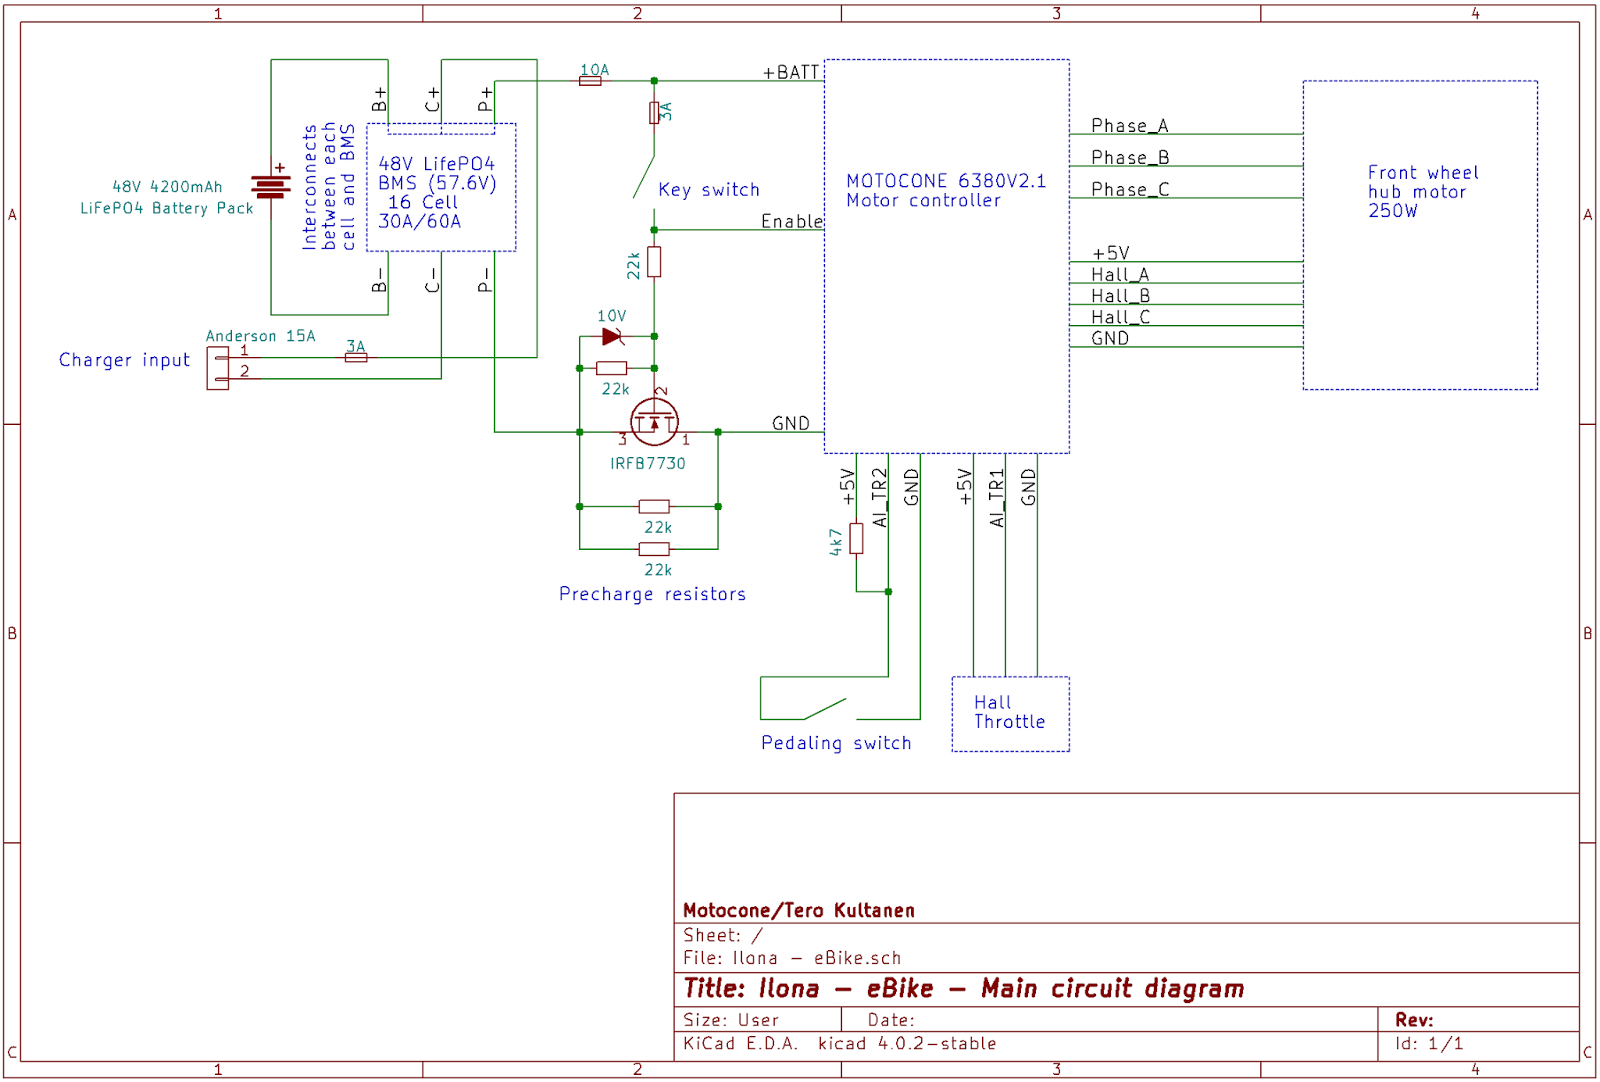 Bms Wiring Diagram Ebike Diagrams For Sony Car Audio Ilona Part 1 The Electric Machine S Circuit Is Shown Below Irfb7730 And Other Components Around It Work As A Precharge Capacitors Of Motor